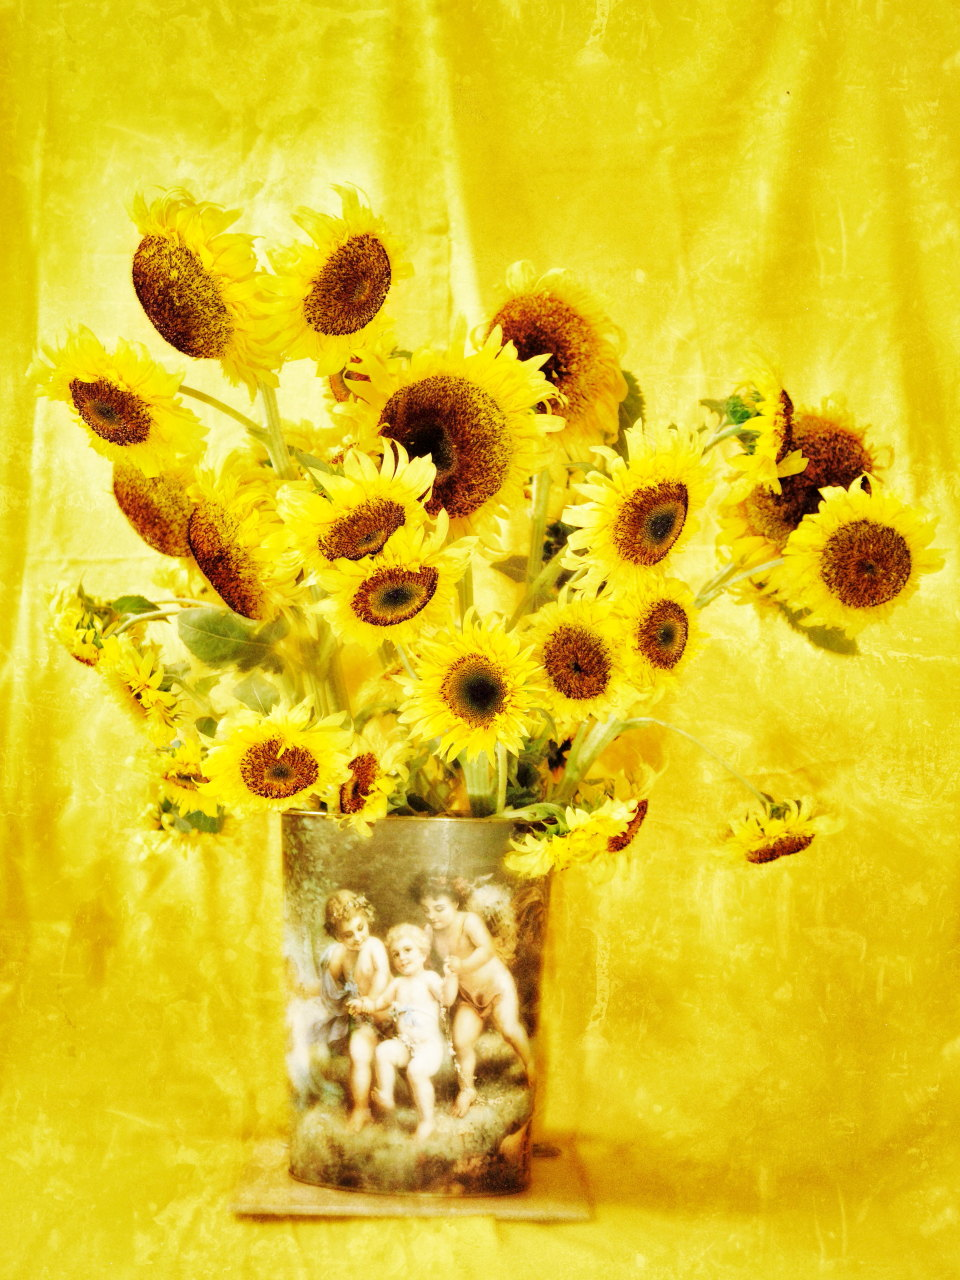 (P+R) Photography [ Sunflower to Van Gogh ]